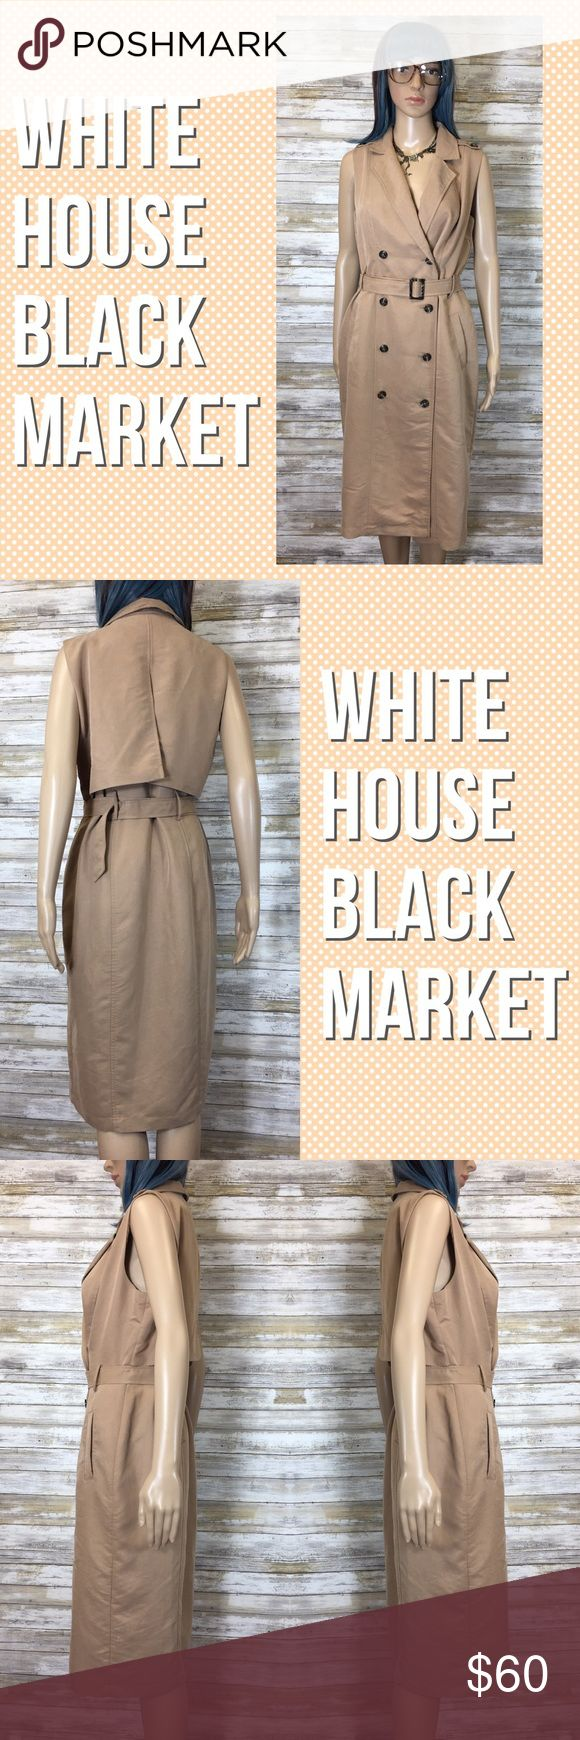 "White House Black Market Sleeveless Trench Dress Made from a soft, lightweight fabrication, this trench coat-inspired design is beyond chic. It features iconic epaulettes, notched lapels, a storm flap and an optional self-belt for an hourglass shape. In a beautiful shade of Khaki. Sleeveless trench dress, fully lined, material: modal/polyester. Machine wash, cold. Size 6. Measurements: Armpit to armpit: 17""; waist: 13.5""; bottom hem: 19""; length: 36""; hips: 17"". White House Black Market…"